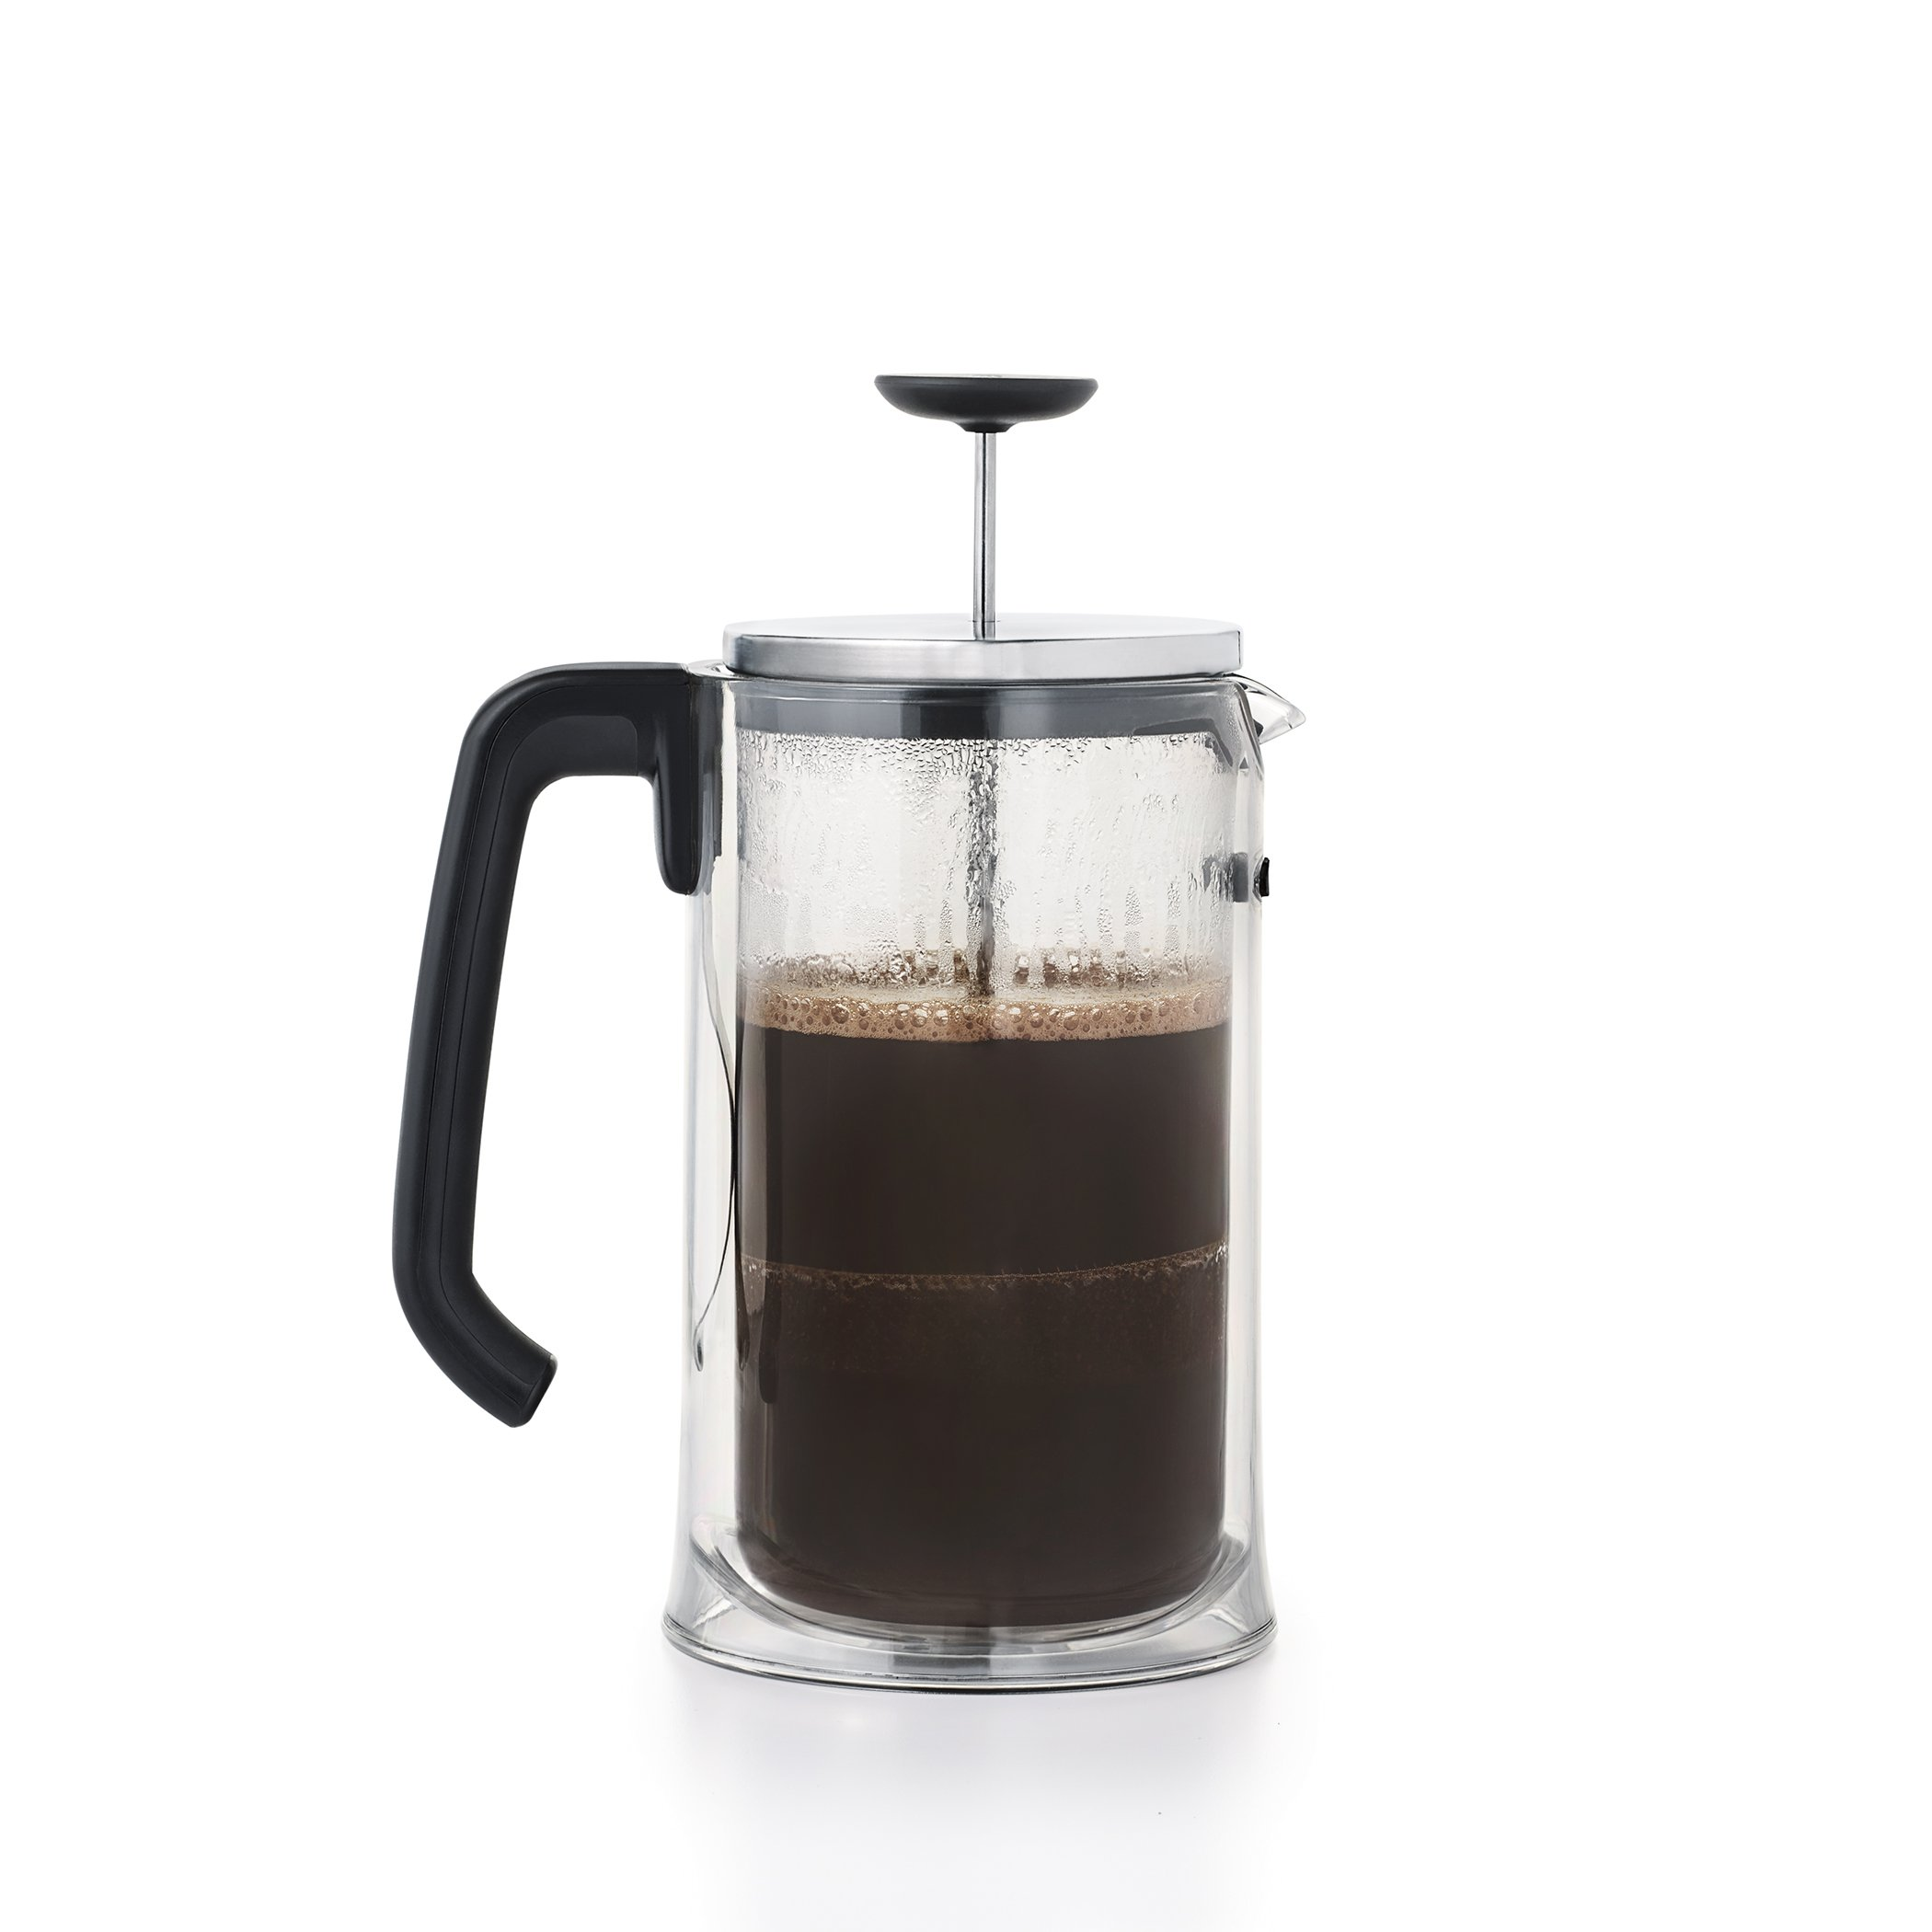 OXO Good Grips Sugar Dispenser with Impact Double Wall French Press Bundle by OXO (Image #6)